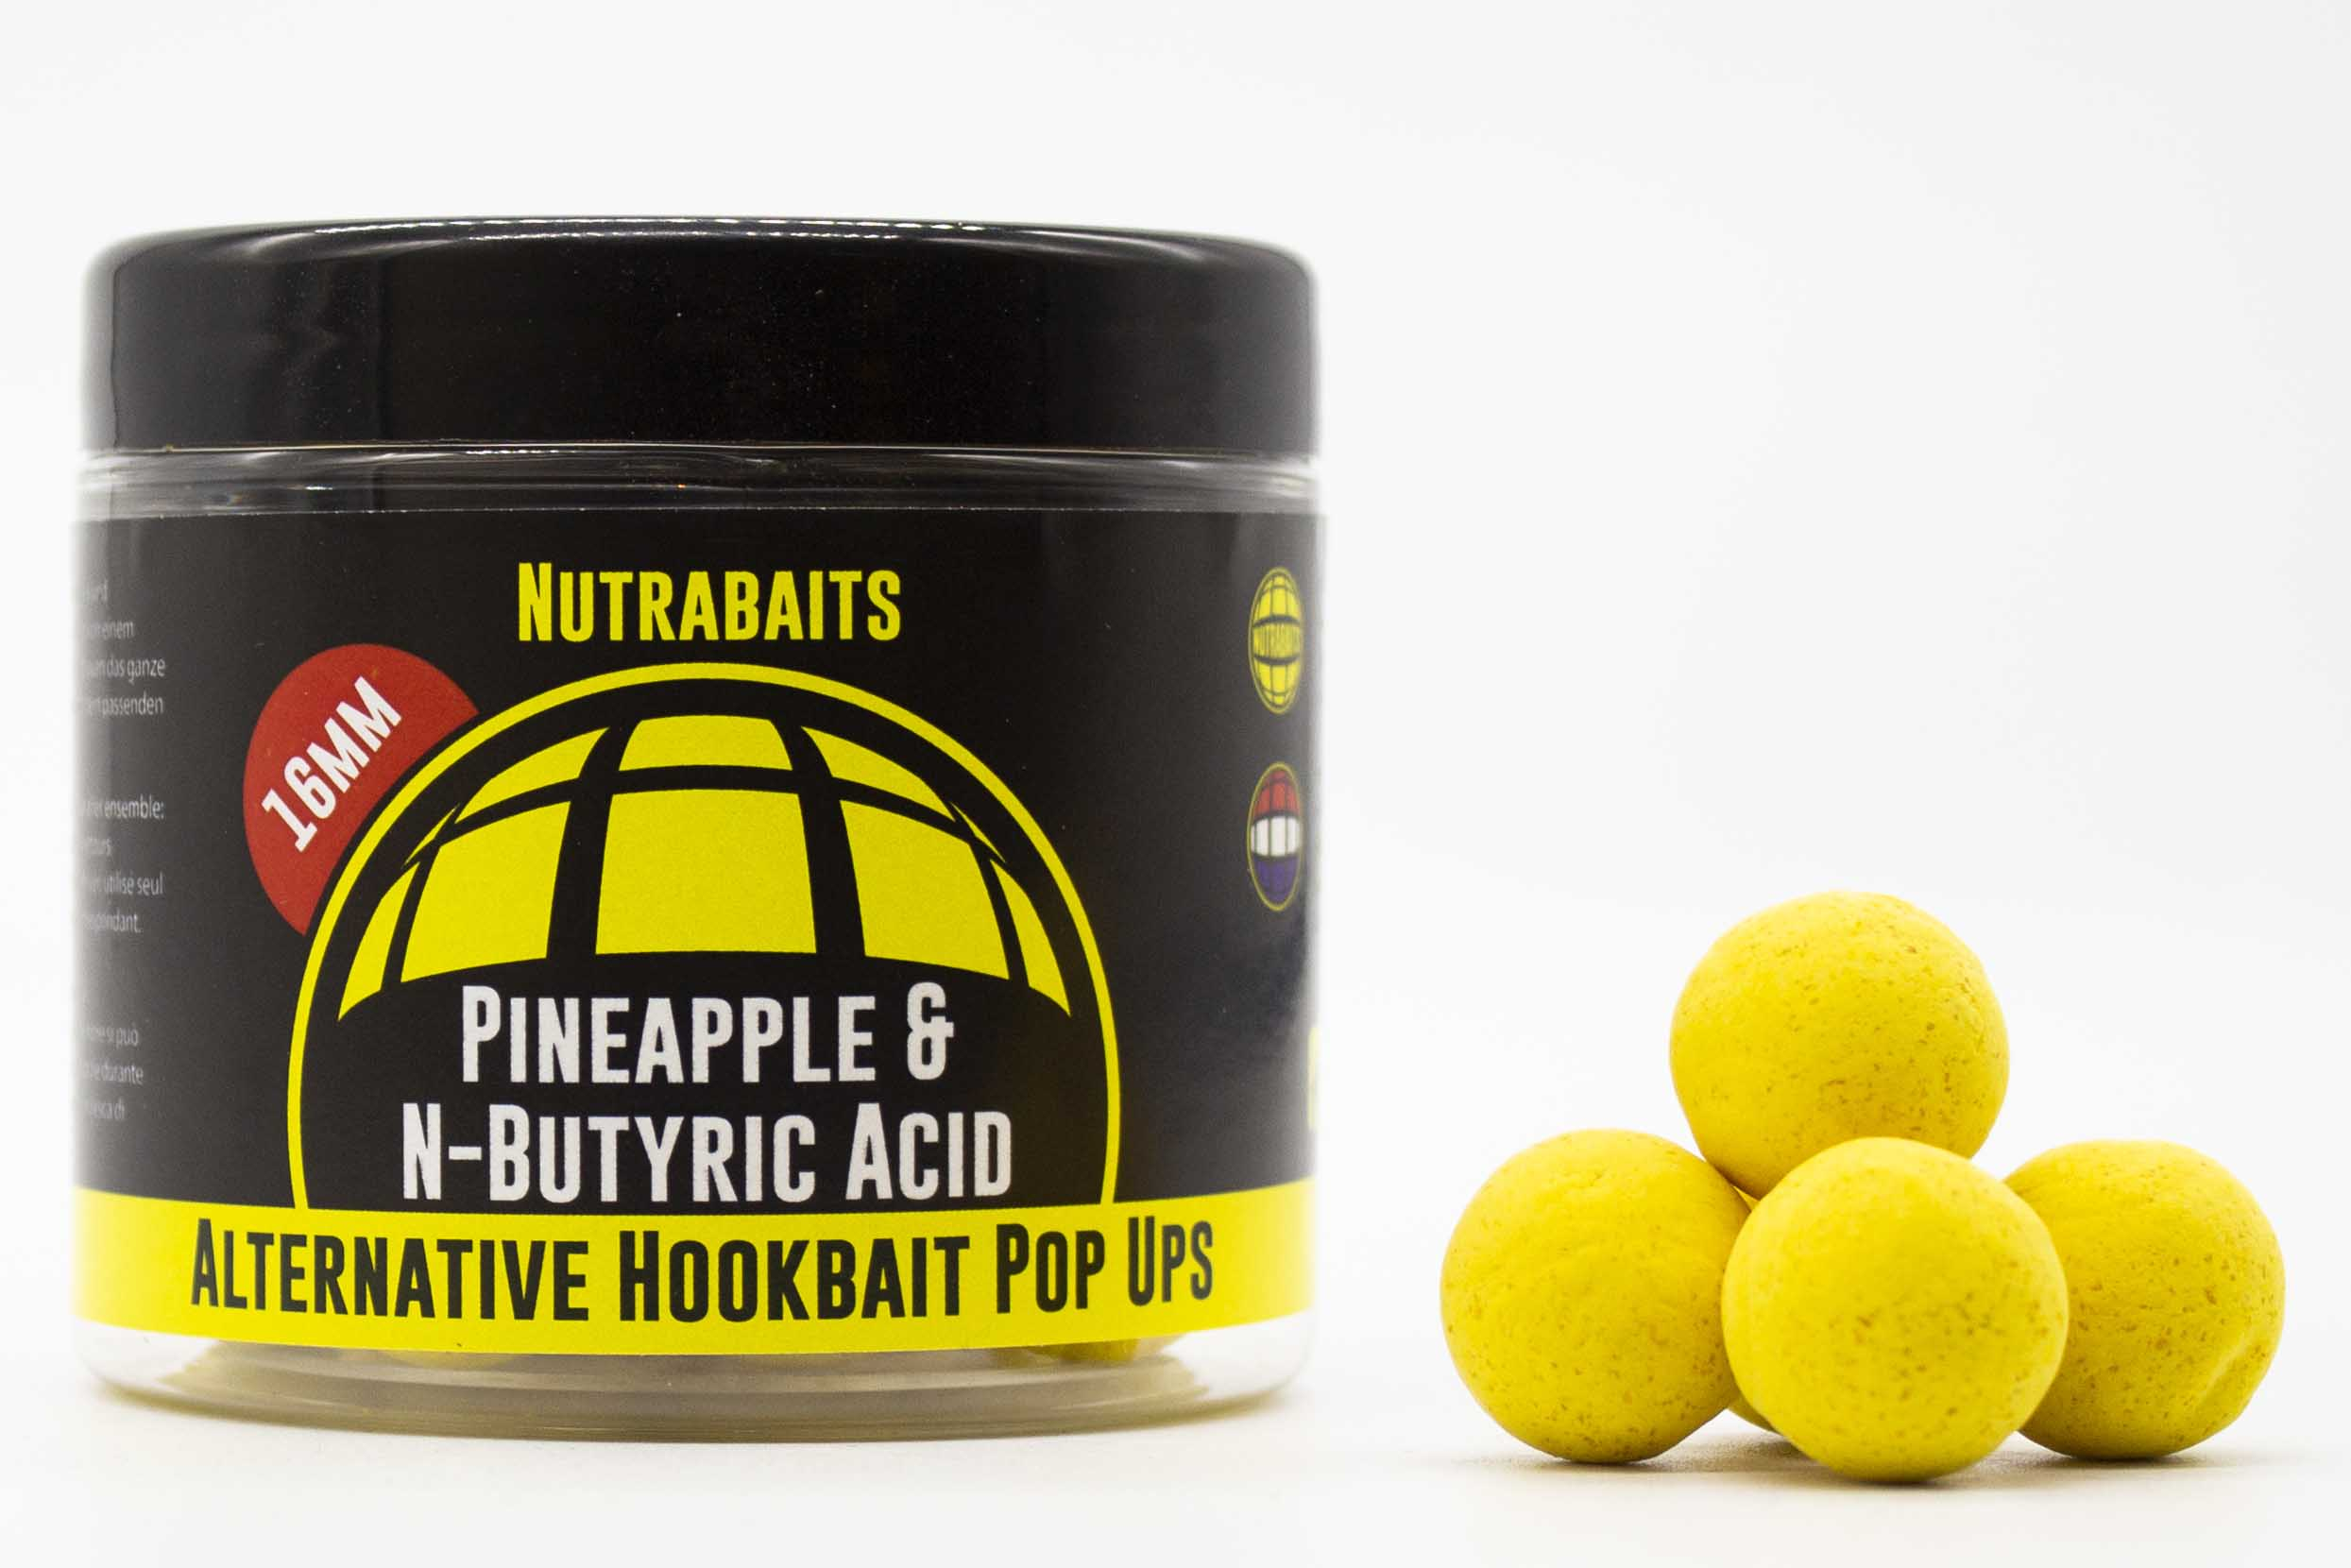 Pineapple & N-Butyric Alternative Hookbaits